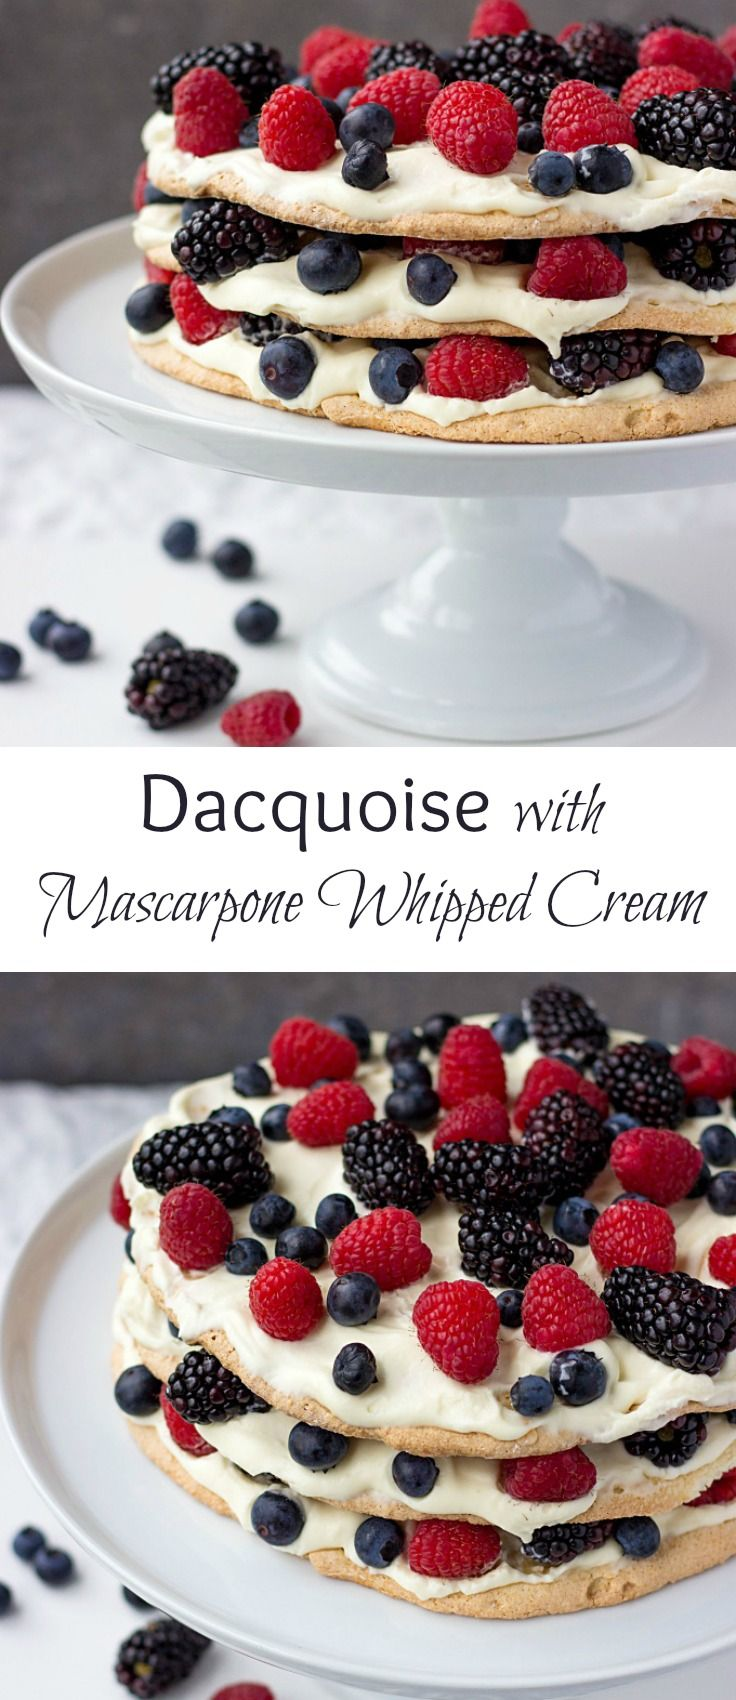 Dacquoise cake - is a super delicate almond meringue cake that is lighter than air. Learn how to make this classic French cake in a step-by-step tutorial.